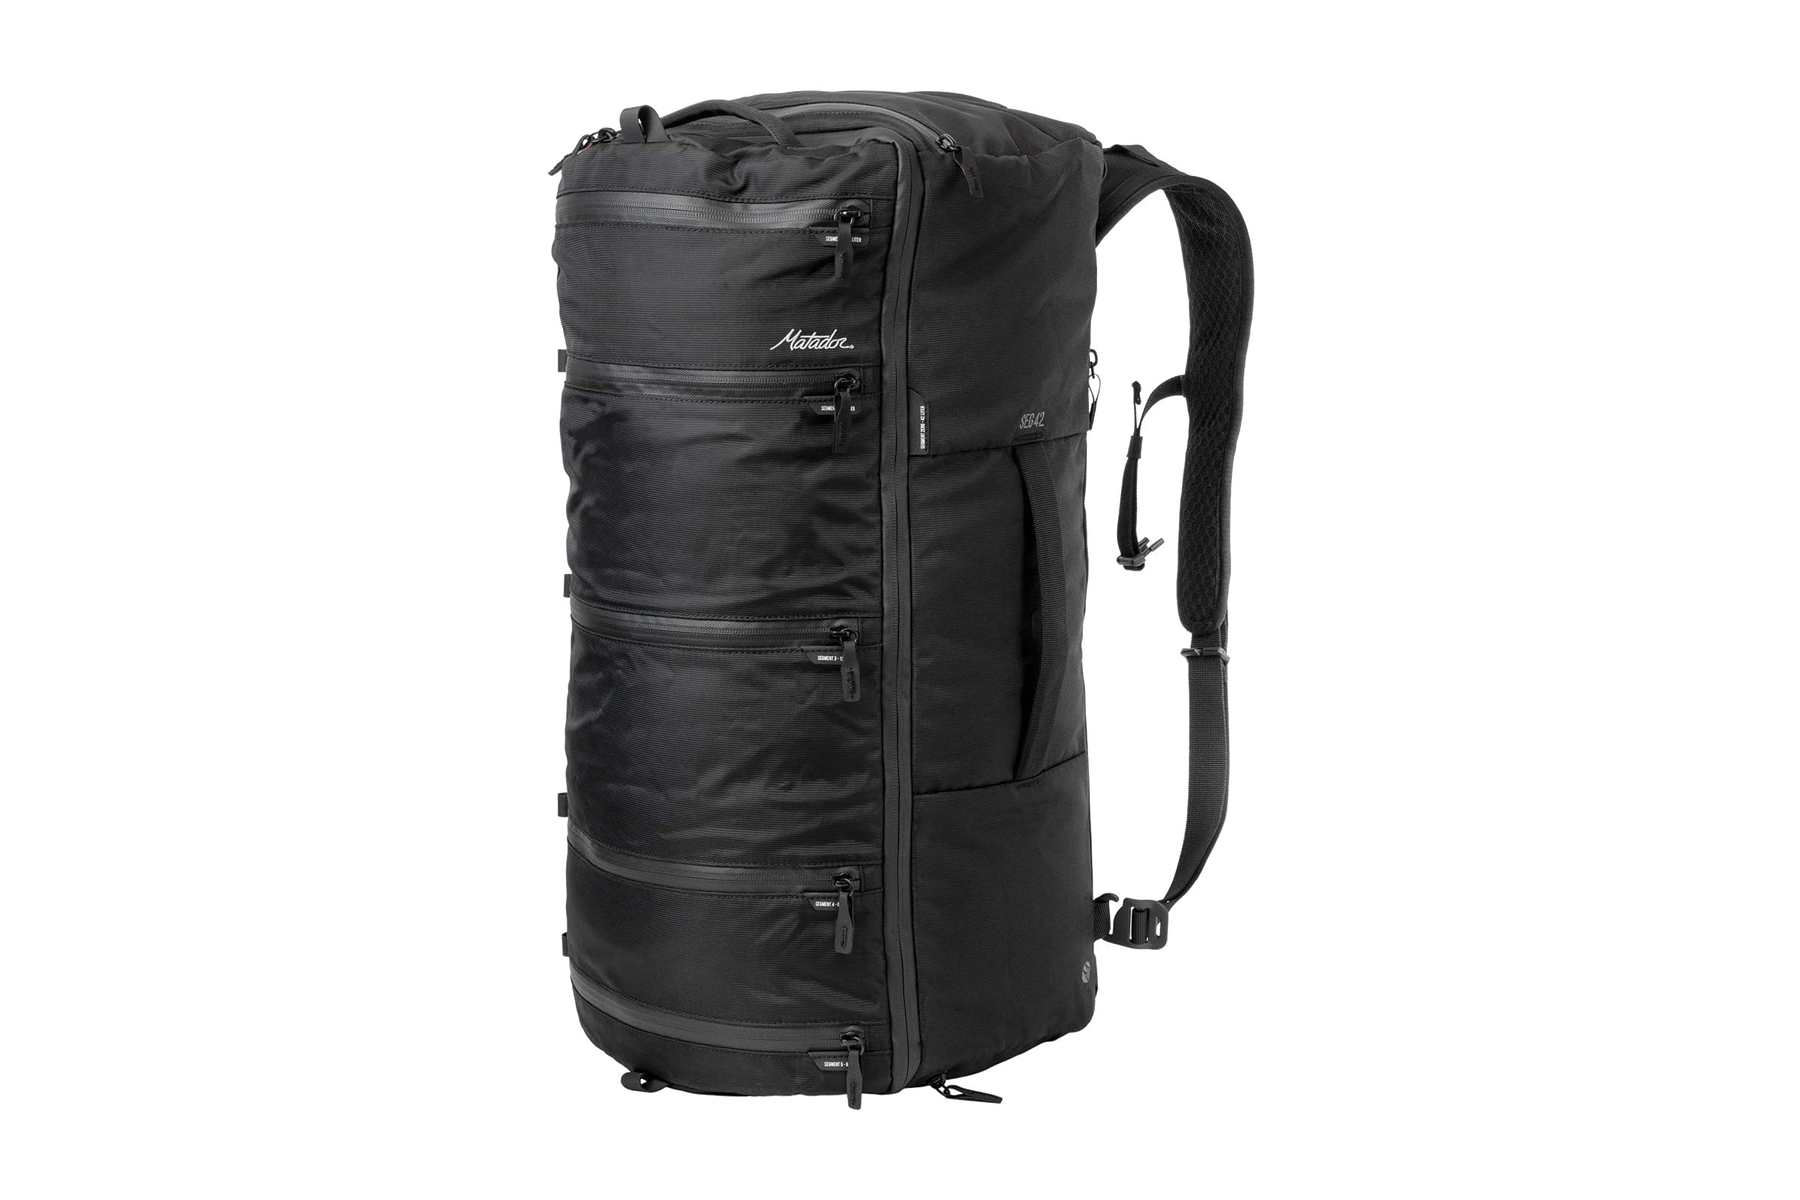 Matador brand travel pack